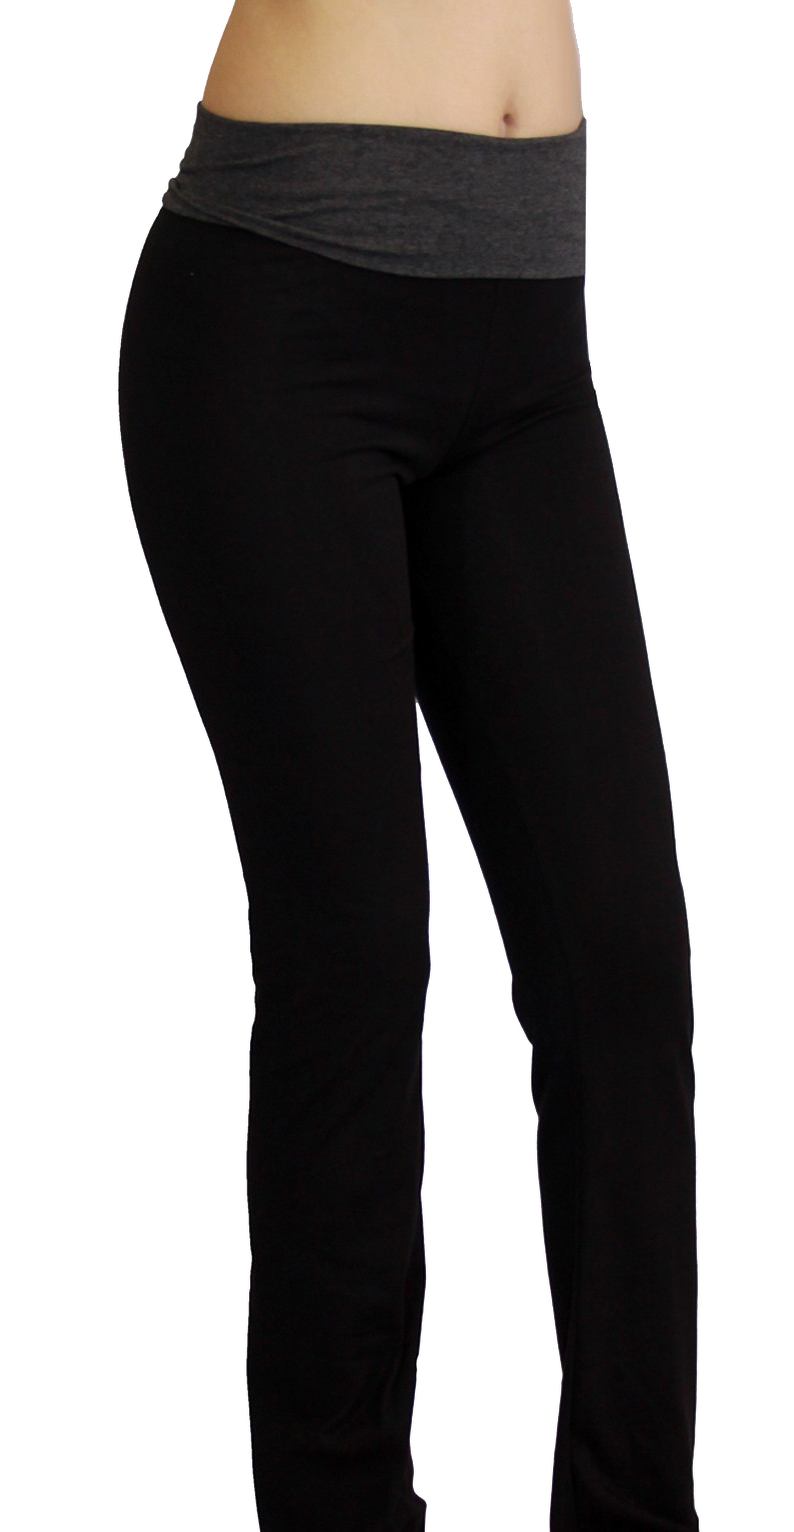 black and gray maternity yoga pants